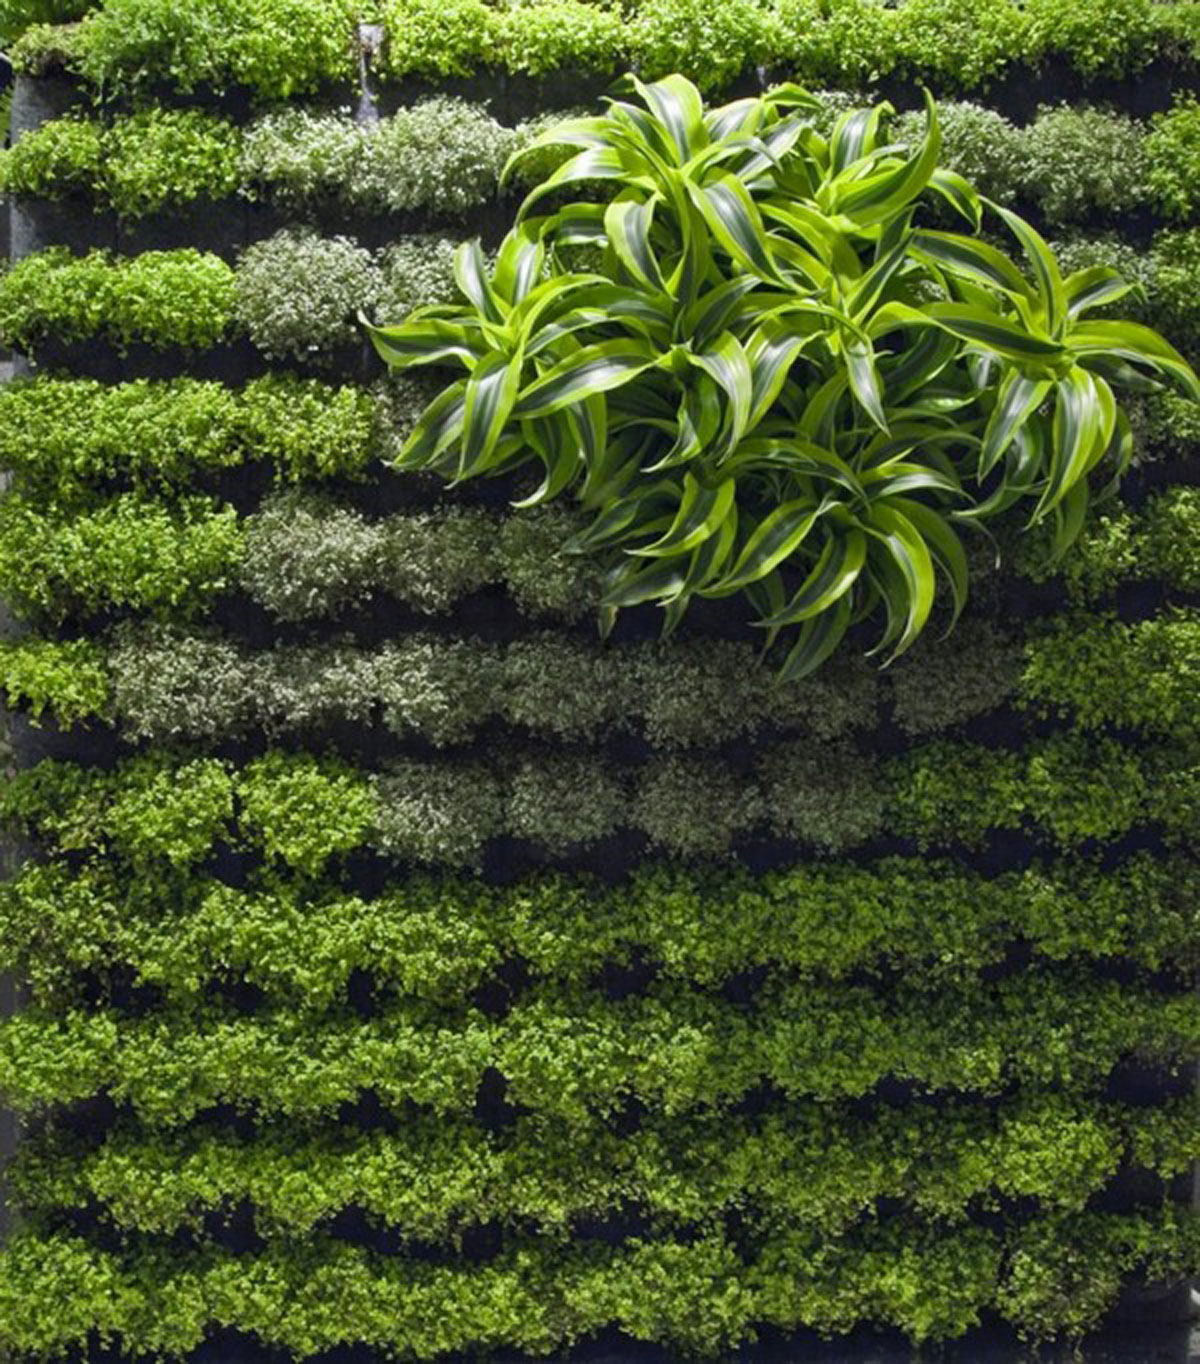 Vertikal Gardinen Applicative Vertical Garden Designs Iroonie